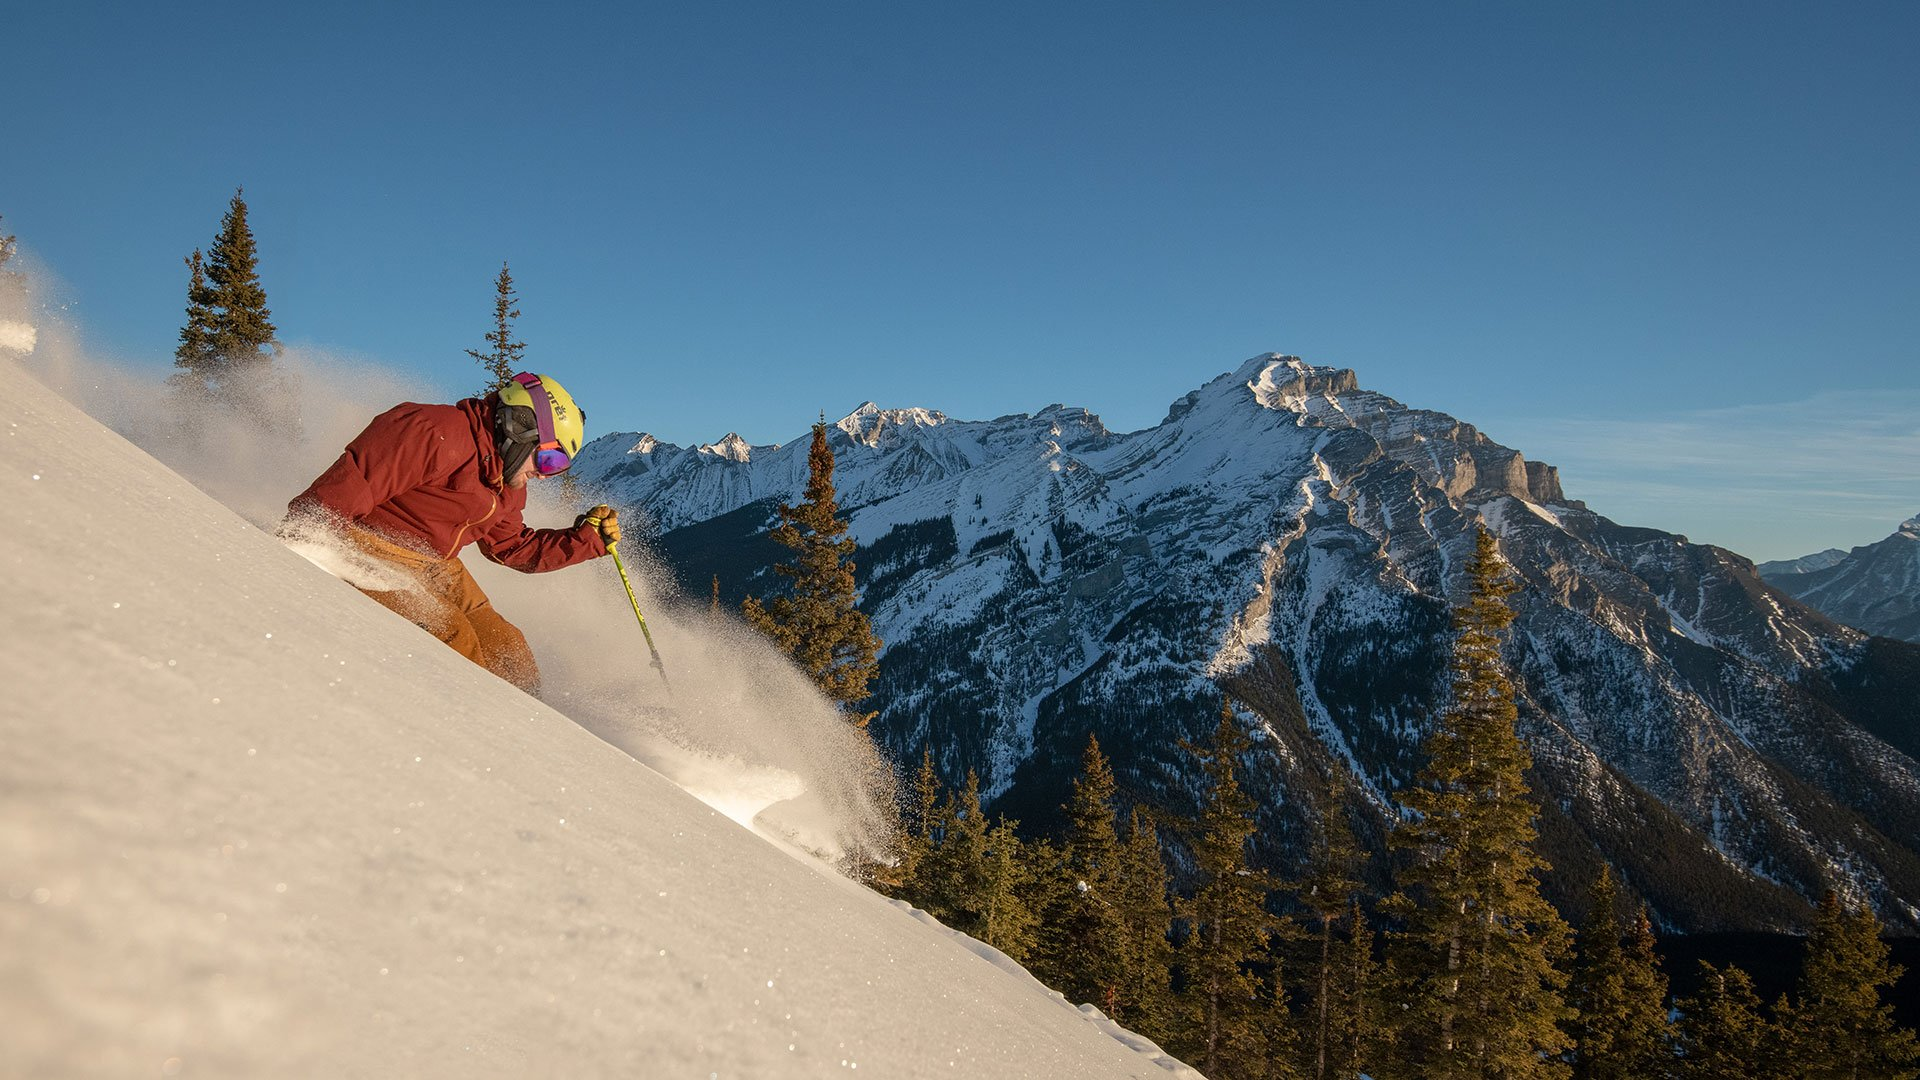 Skier at Mt. Norquay ski resort, Mt. Rundle in the background. Banff National Park.